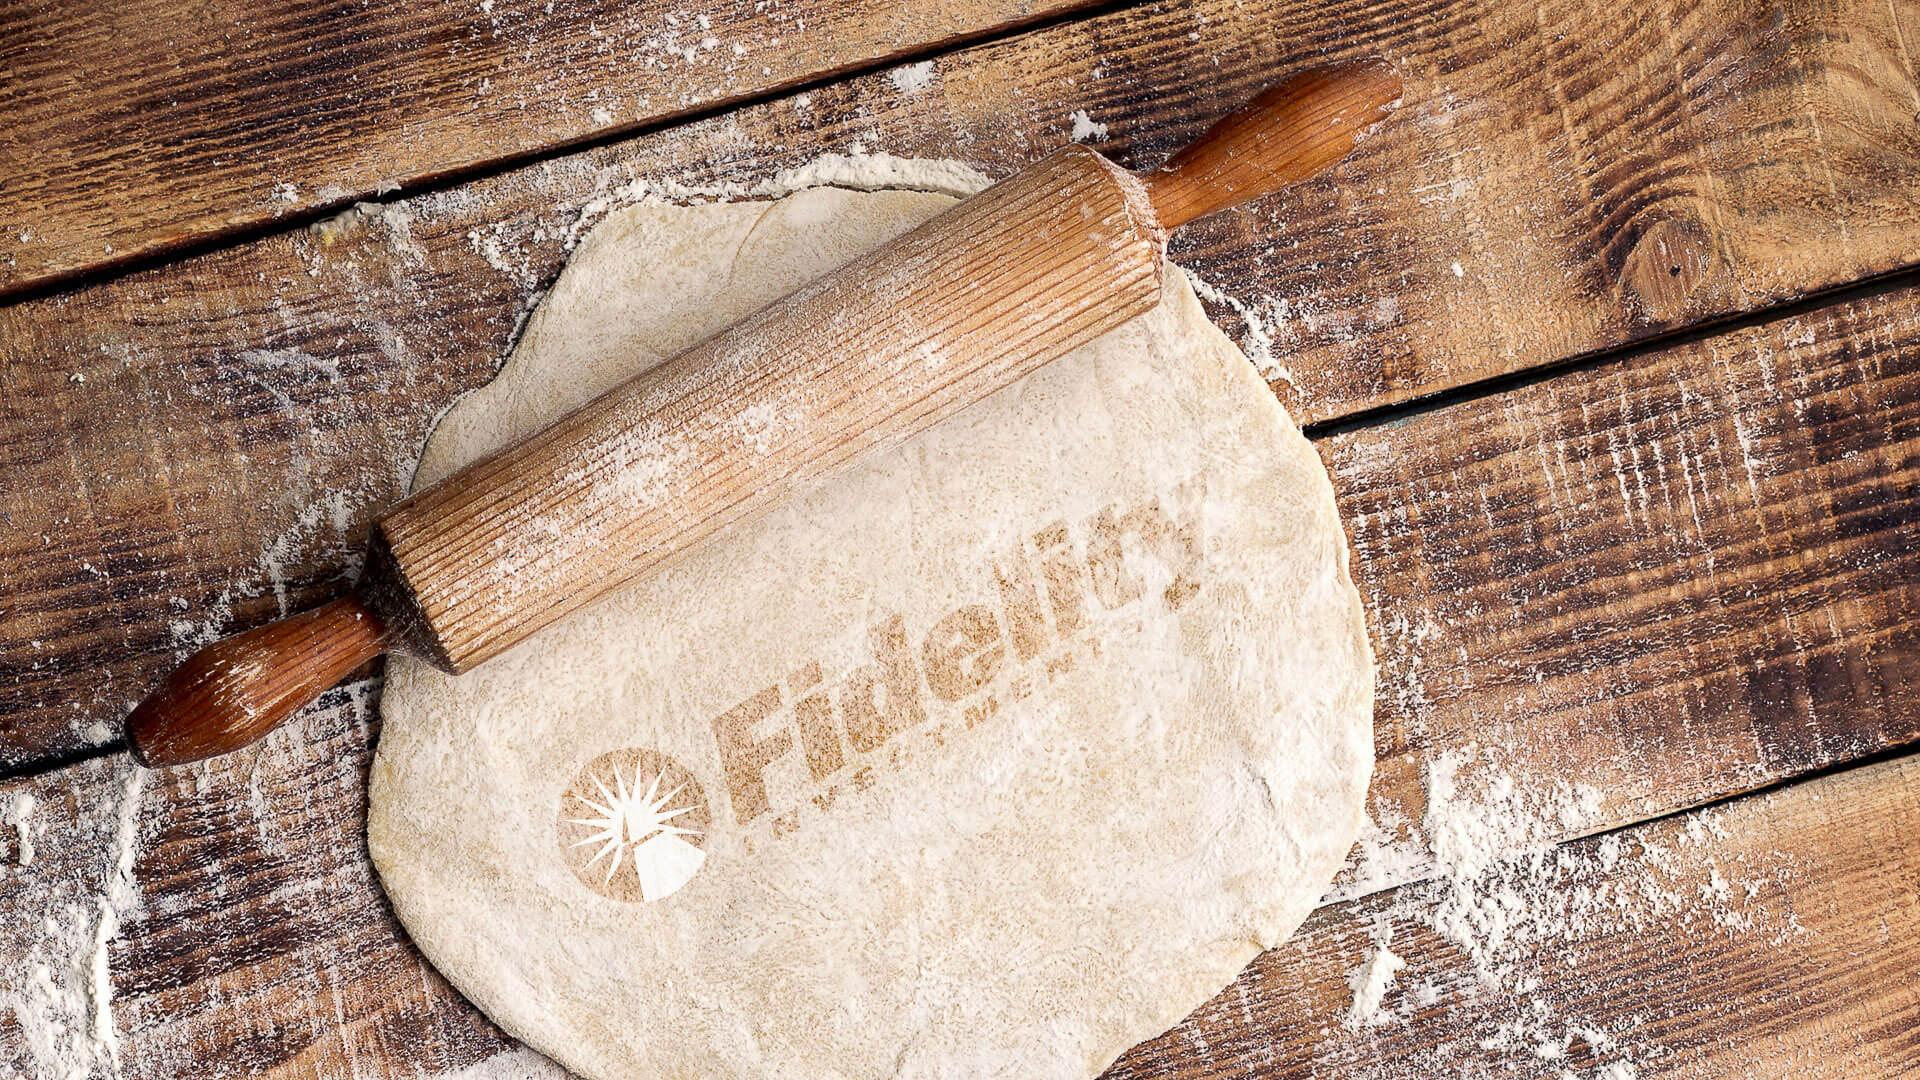 Fidelity Investments rolling pin with dough